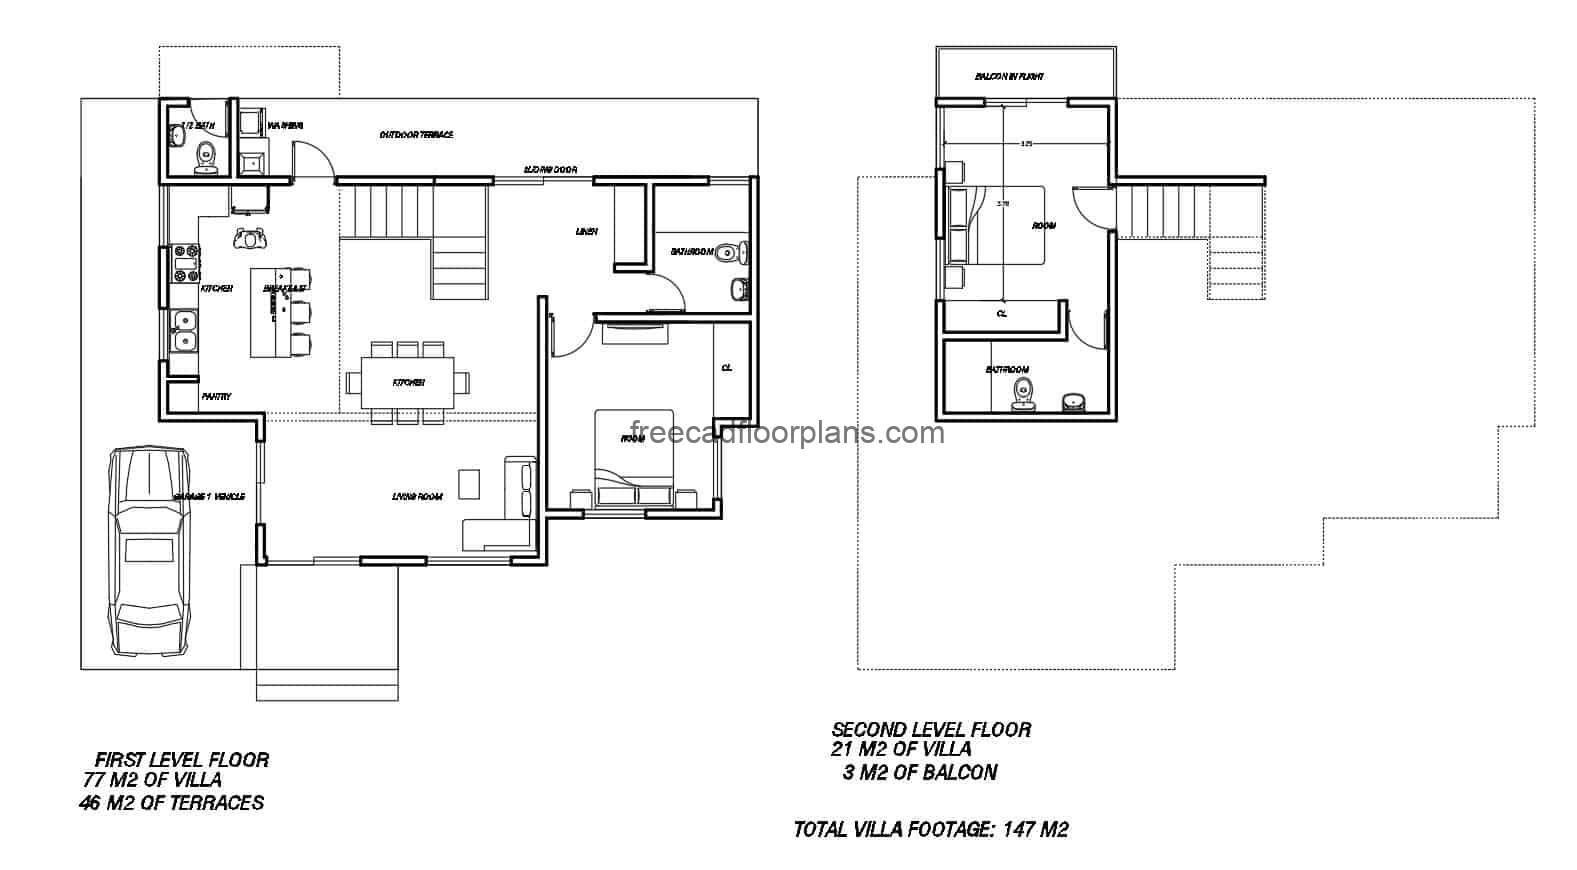 Architectural and detailed layout plan in autocad format of a country house with loft and garage for one vehicle